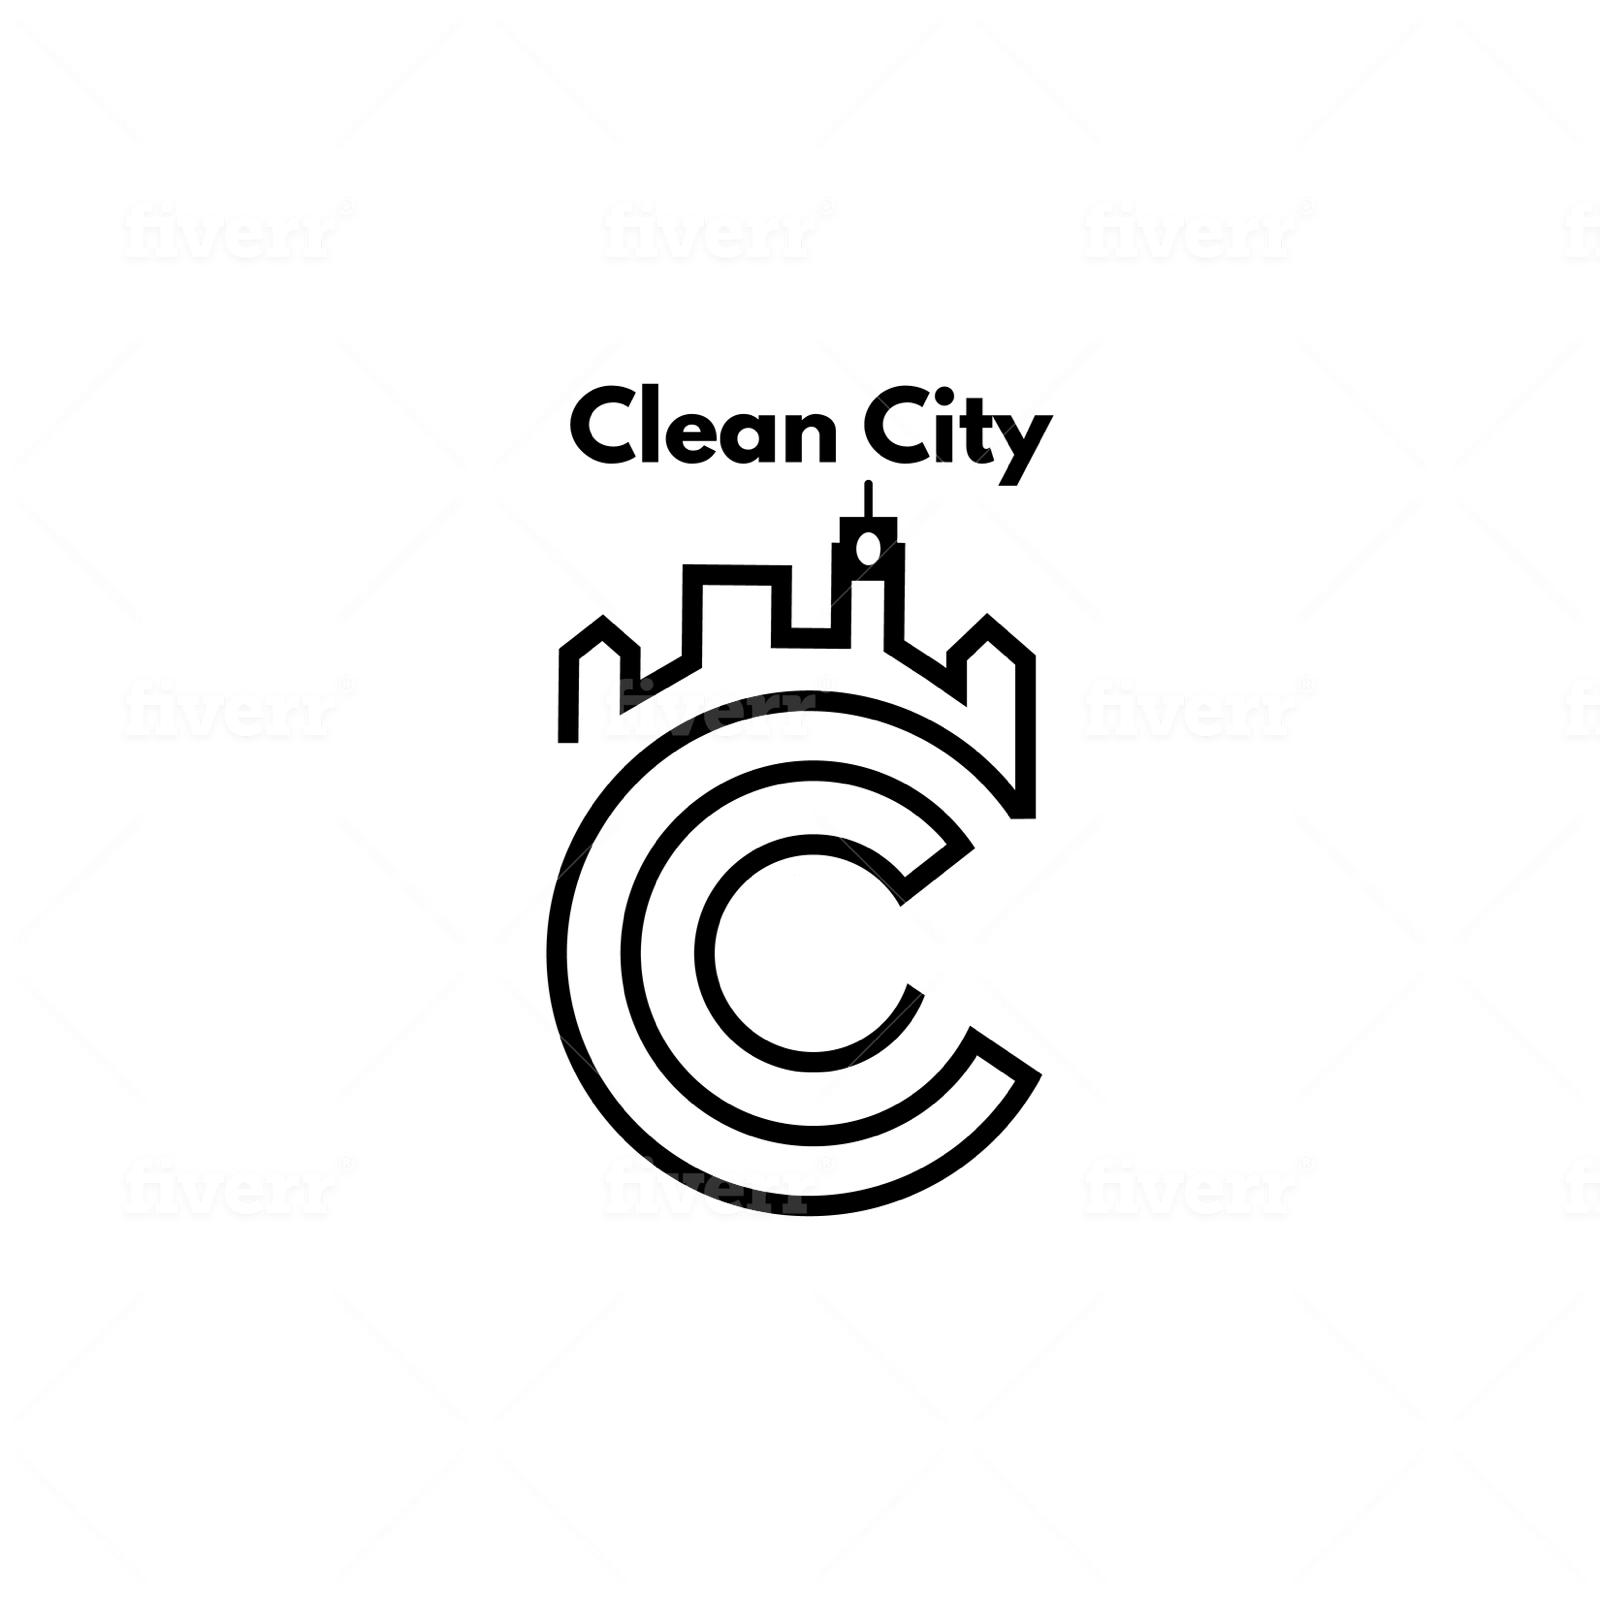 Vacation Rental Property Managers Opting for a Turnkey Option - Clean City Can Manage Turnovers